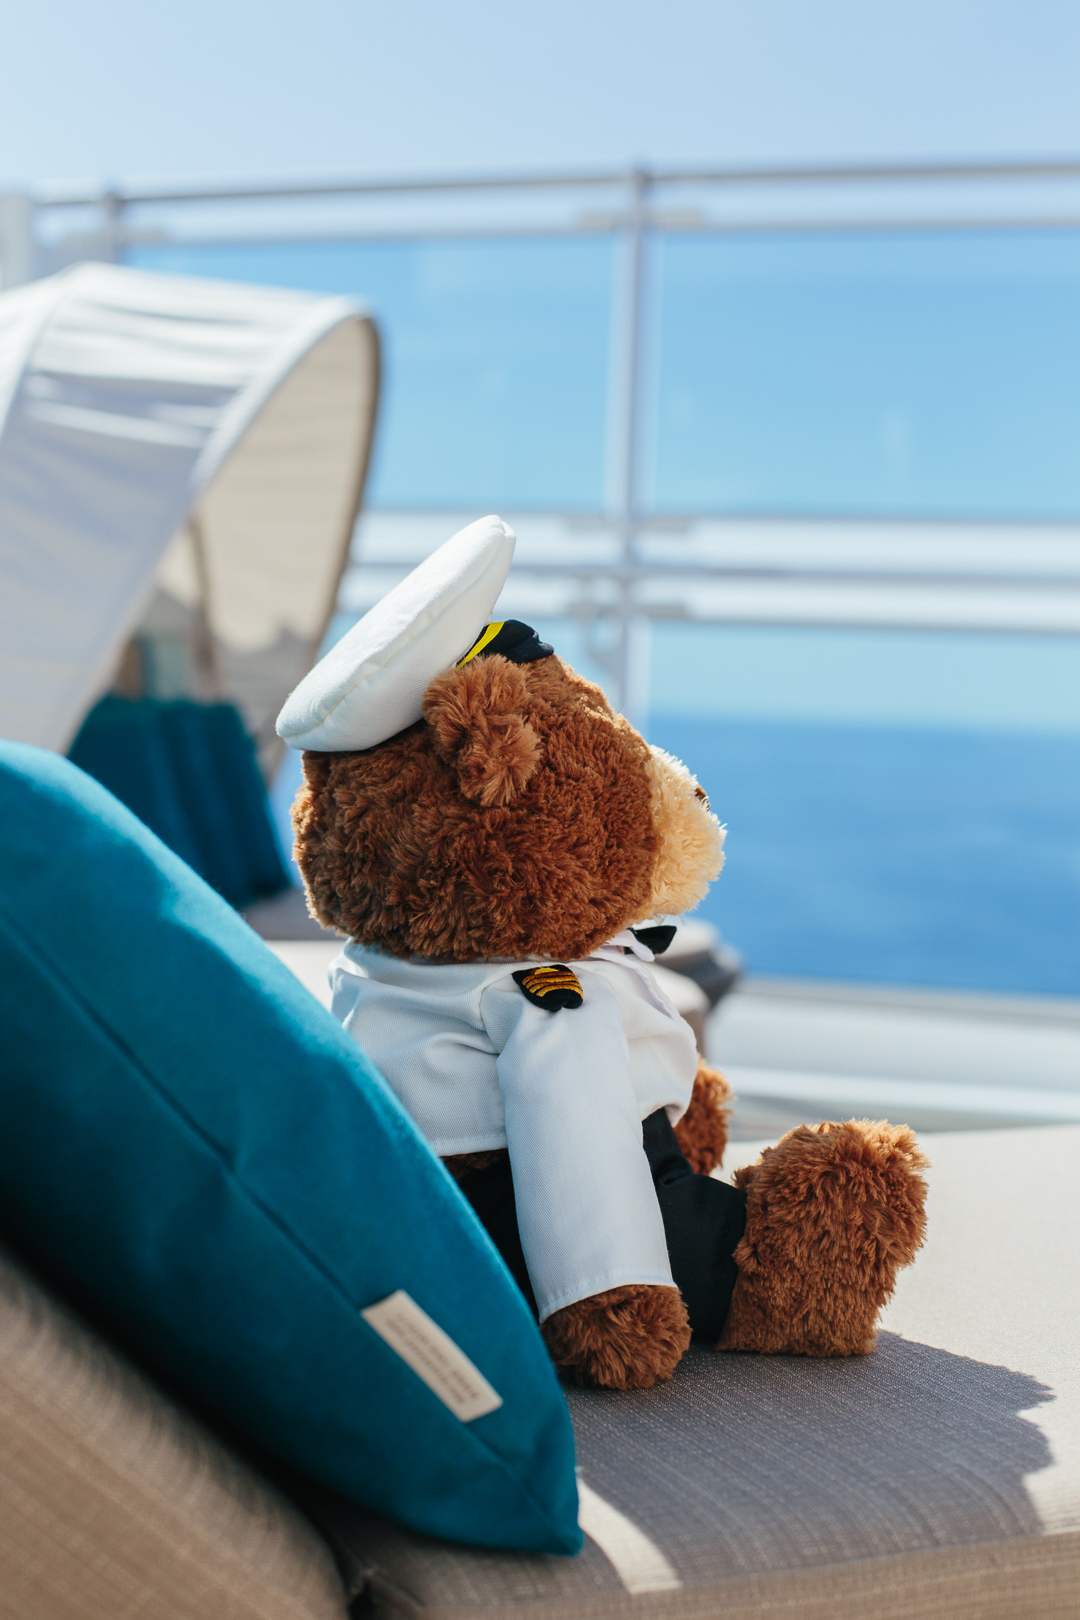 Sky Suites Offer The Largest Balconies At Sea